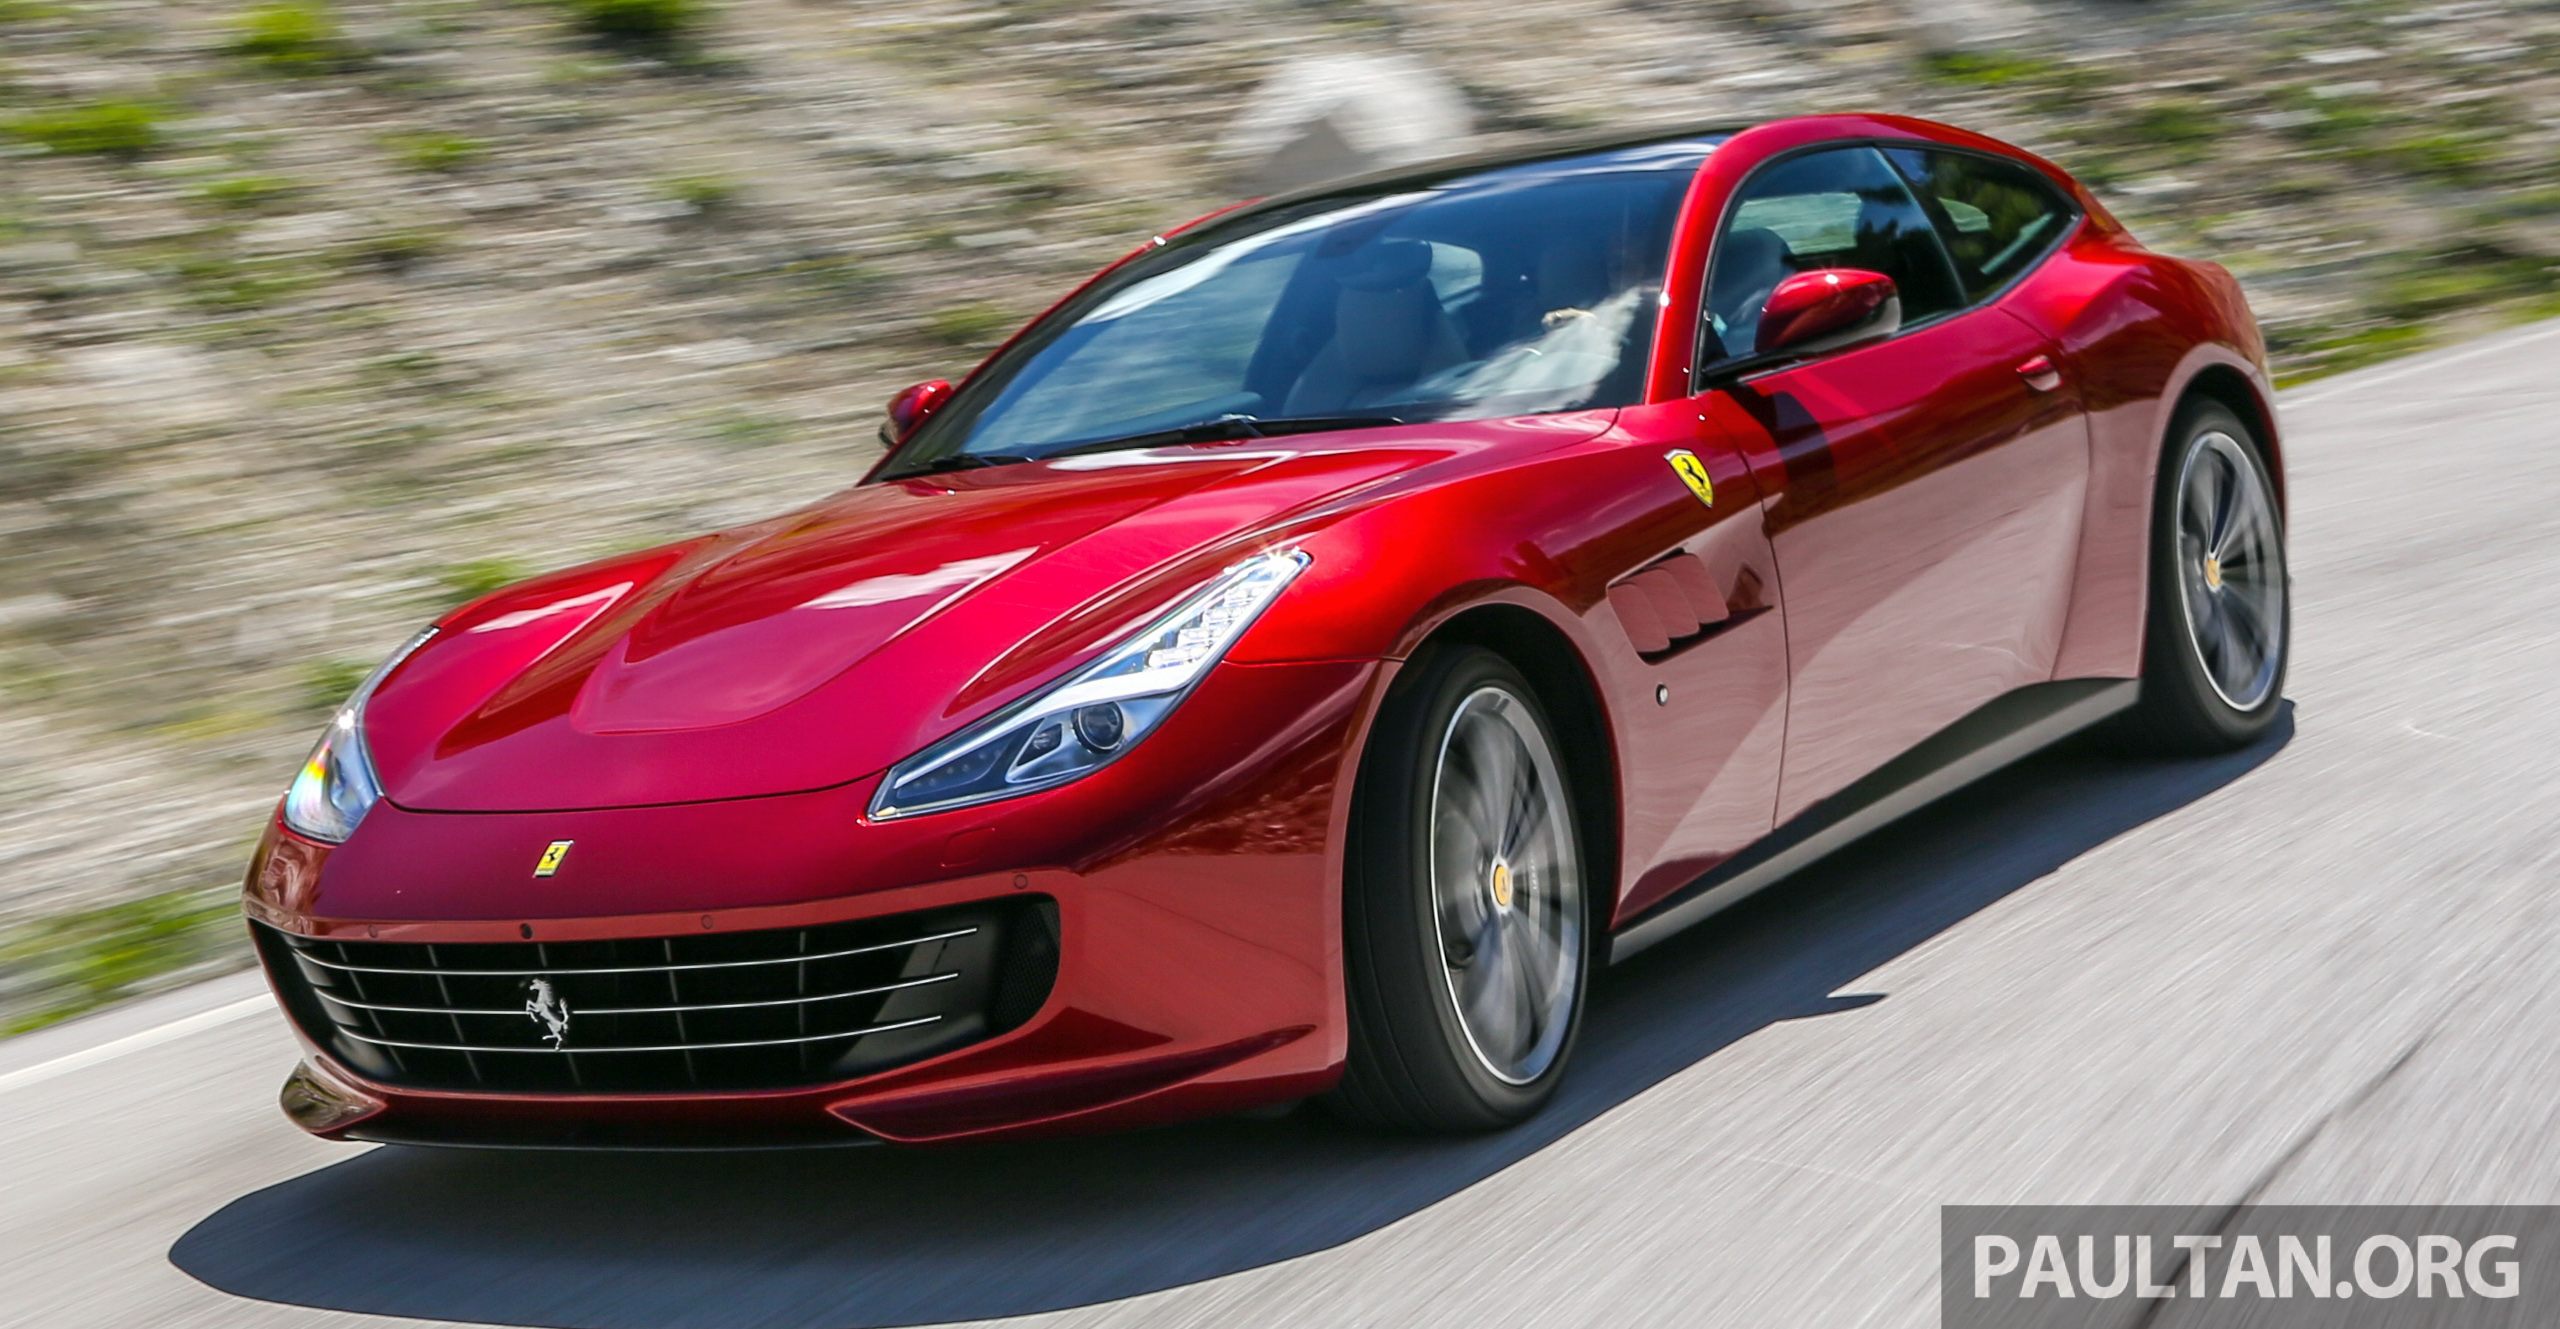 Ferrari not opposed to SUVs, but Ferrari SUV must be ...